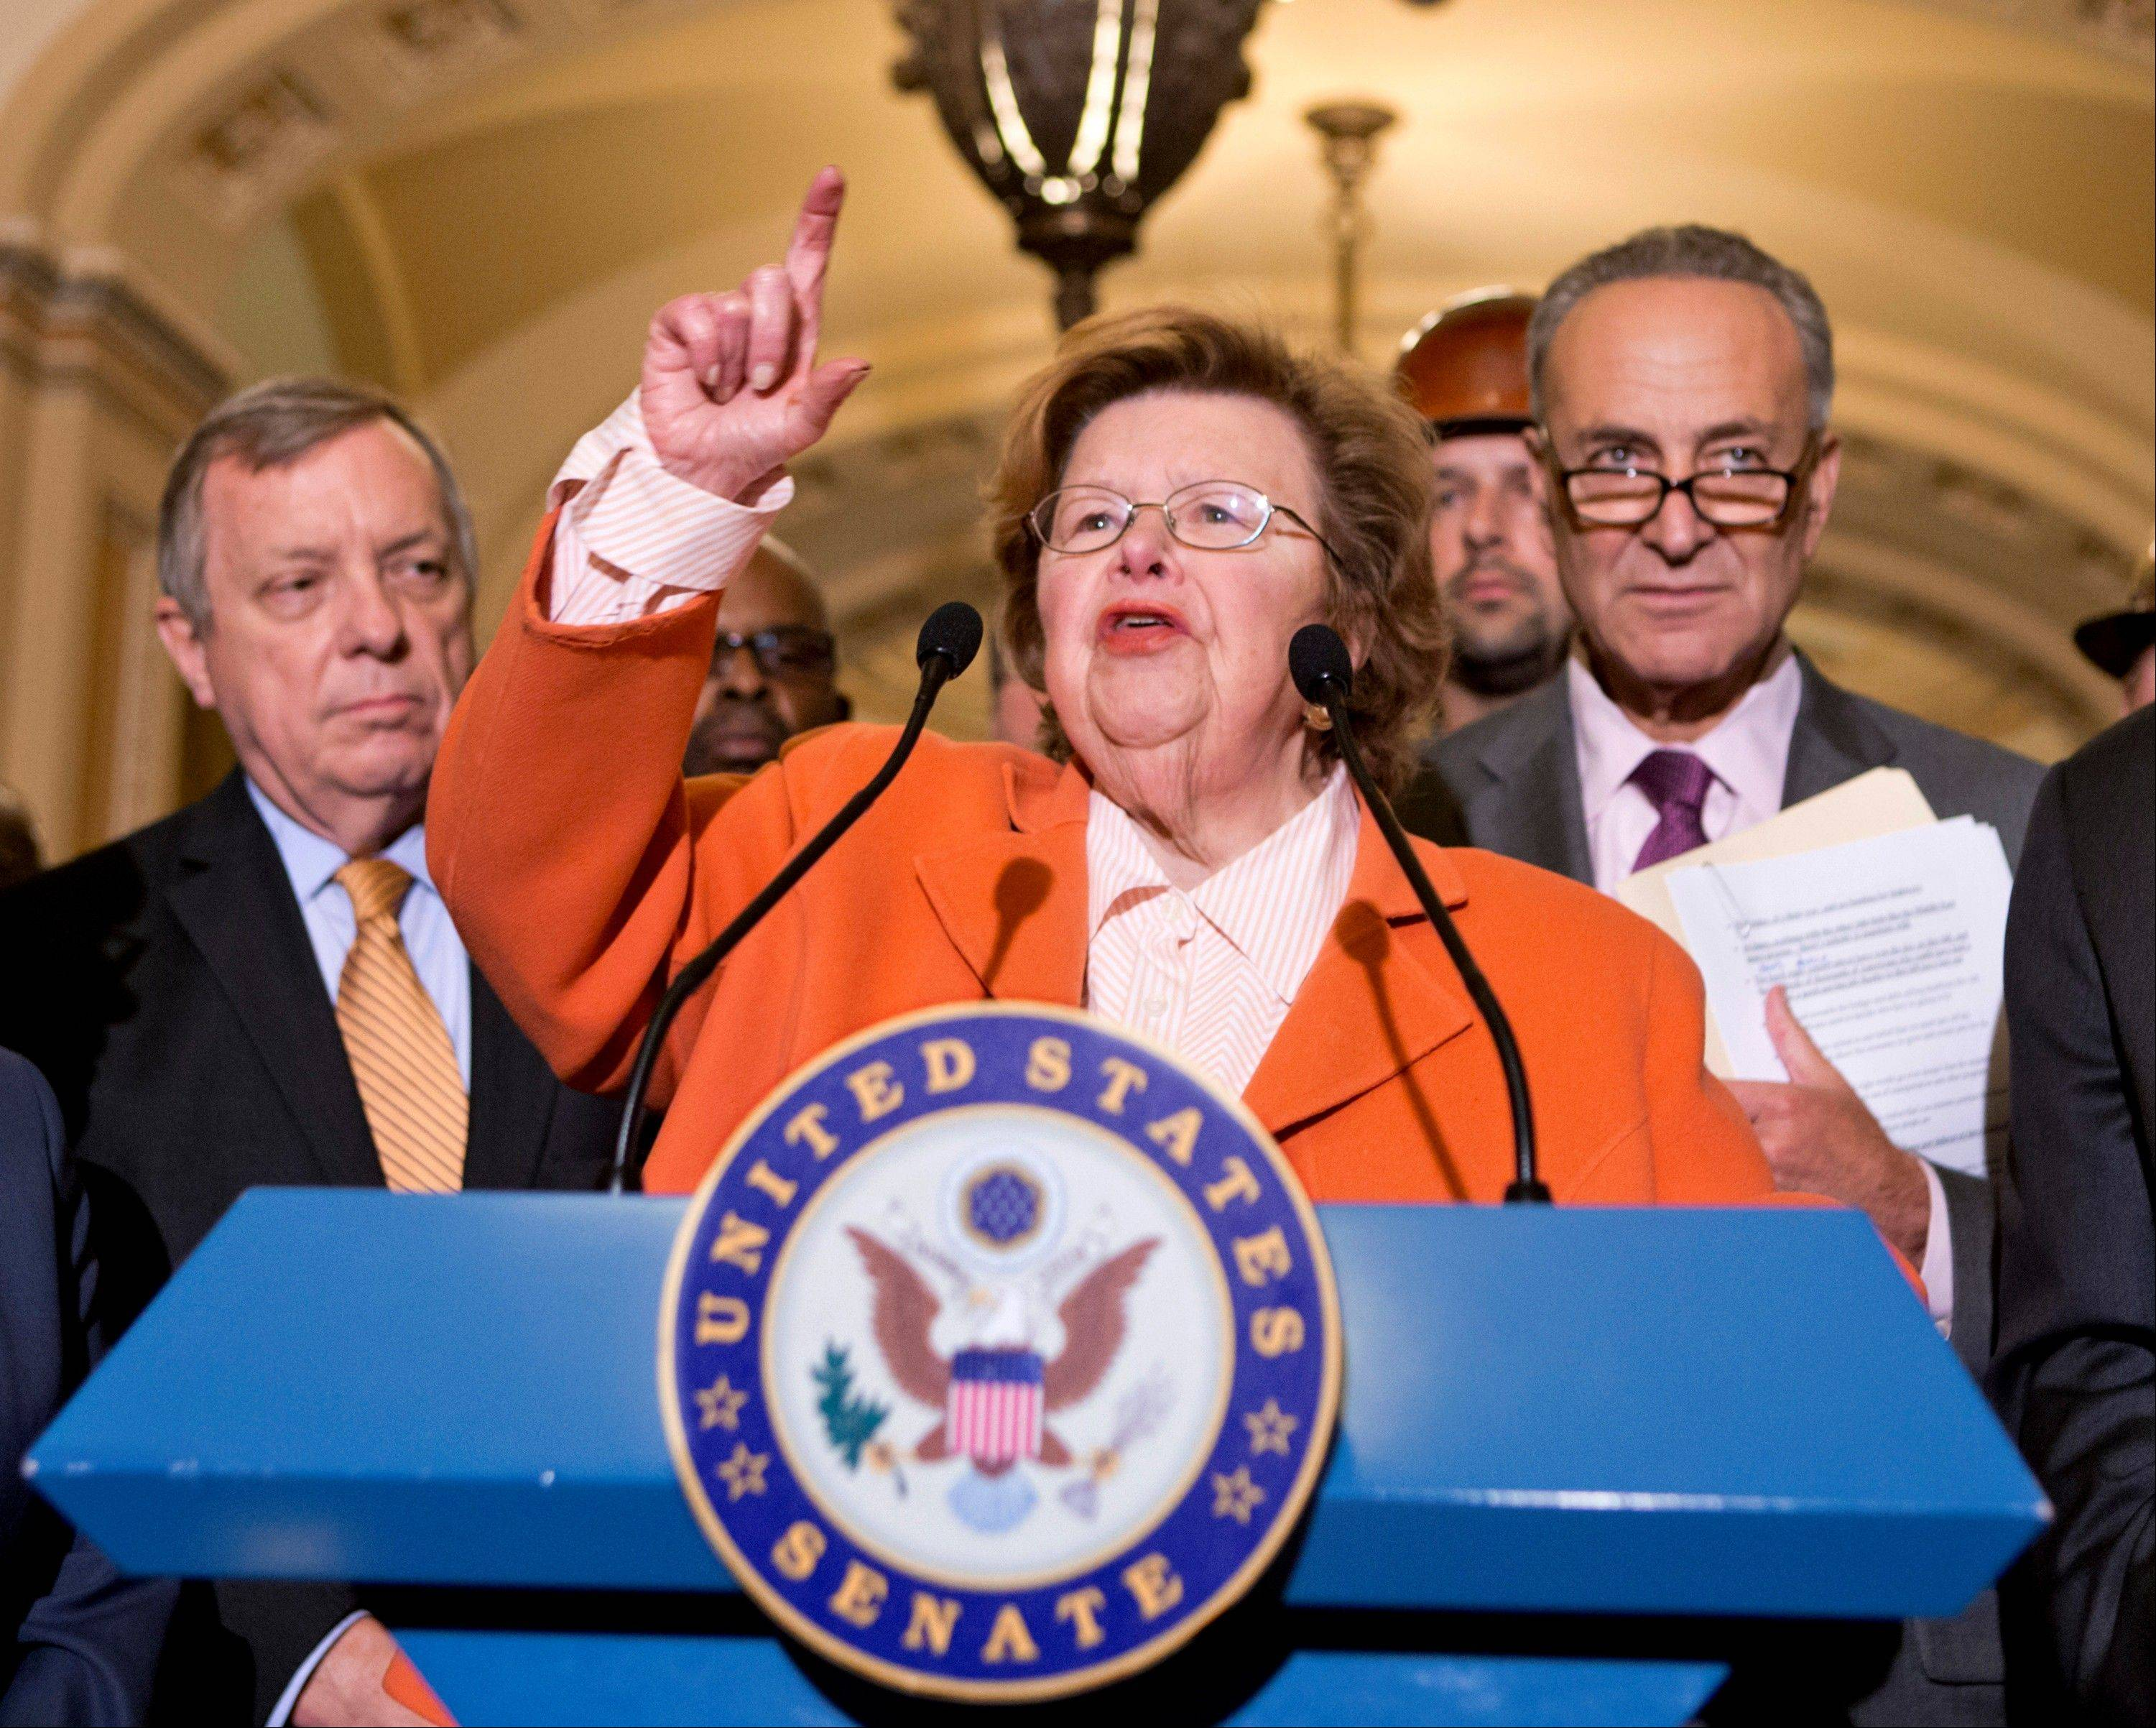 Senate Appropriations Committee Chair Sen. Barbara Mikulski is seen flanked by Sen. Dick Durbin of Illinois and Sen. Charles Schumer of New York. Top congressional negotiators released a bipartisan $1.1 trillion spending bill that would pay for the operations of government through October and finally put to rest the bitter budget battles of last year.